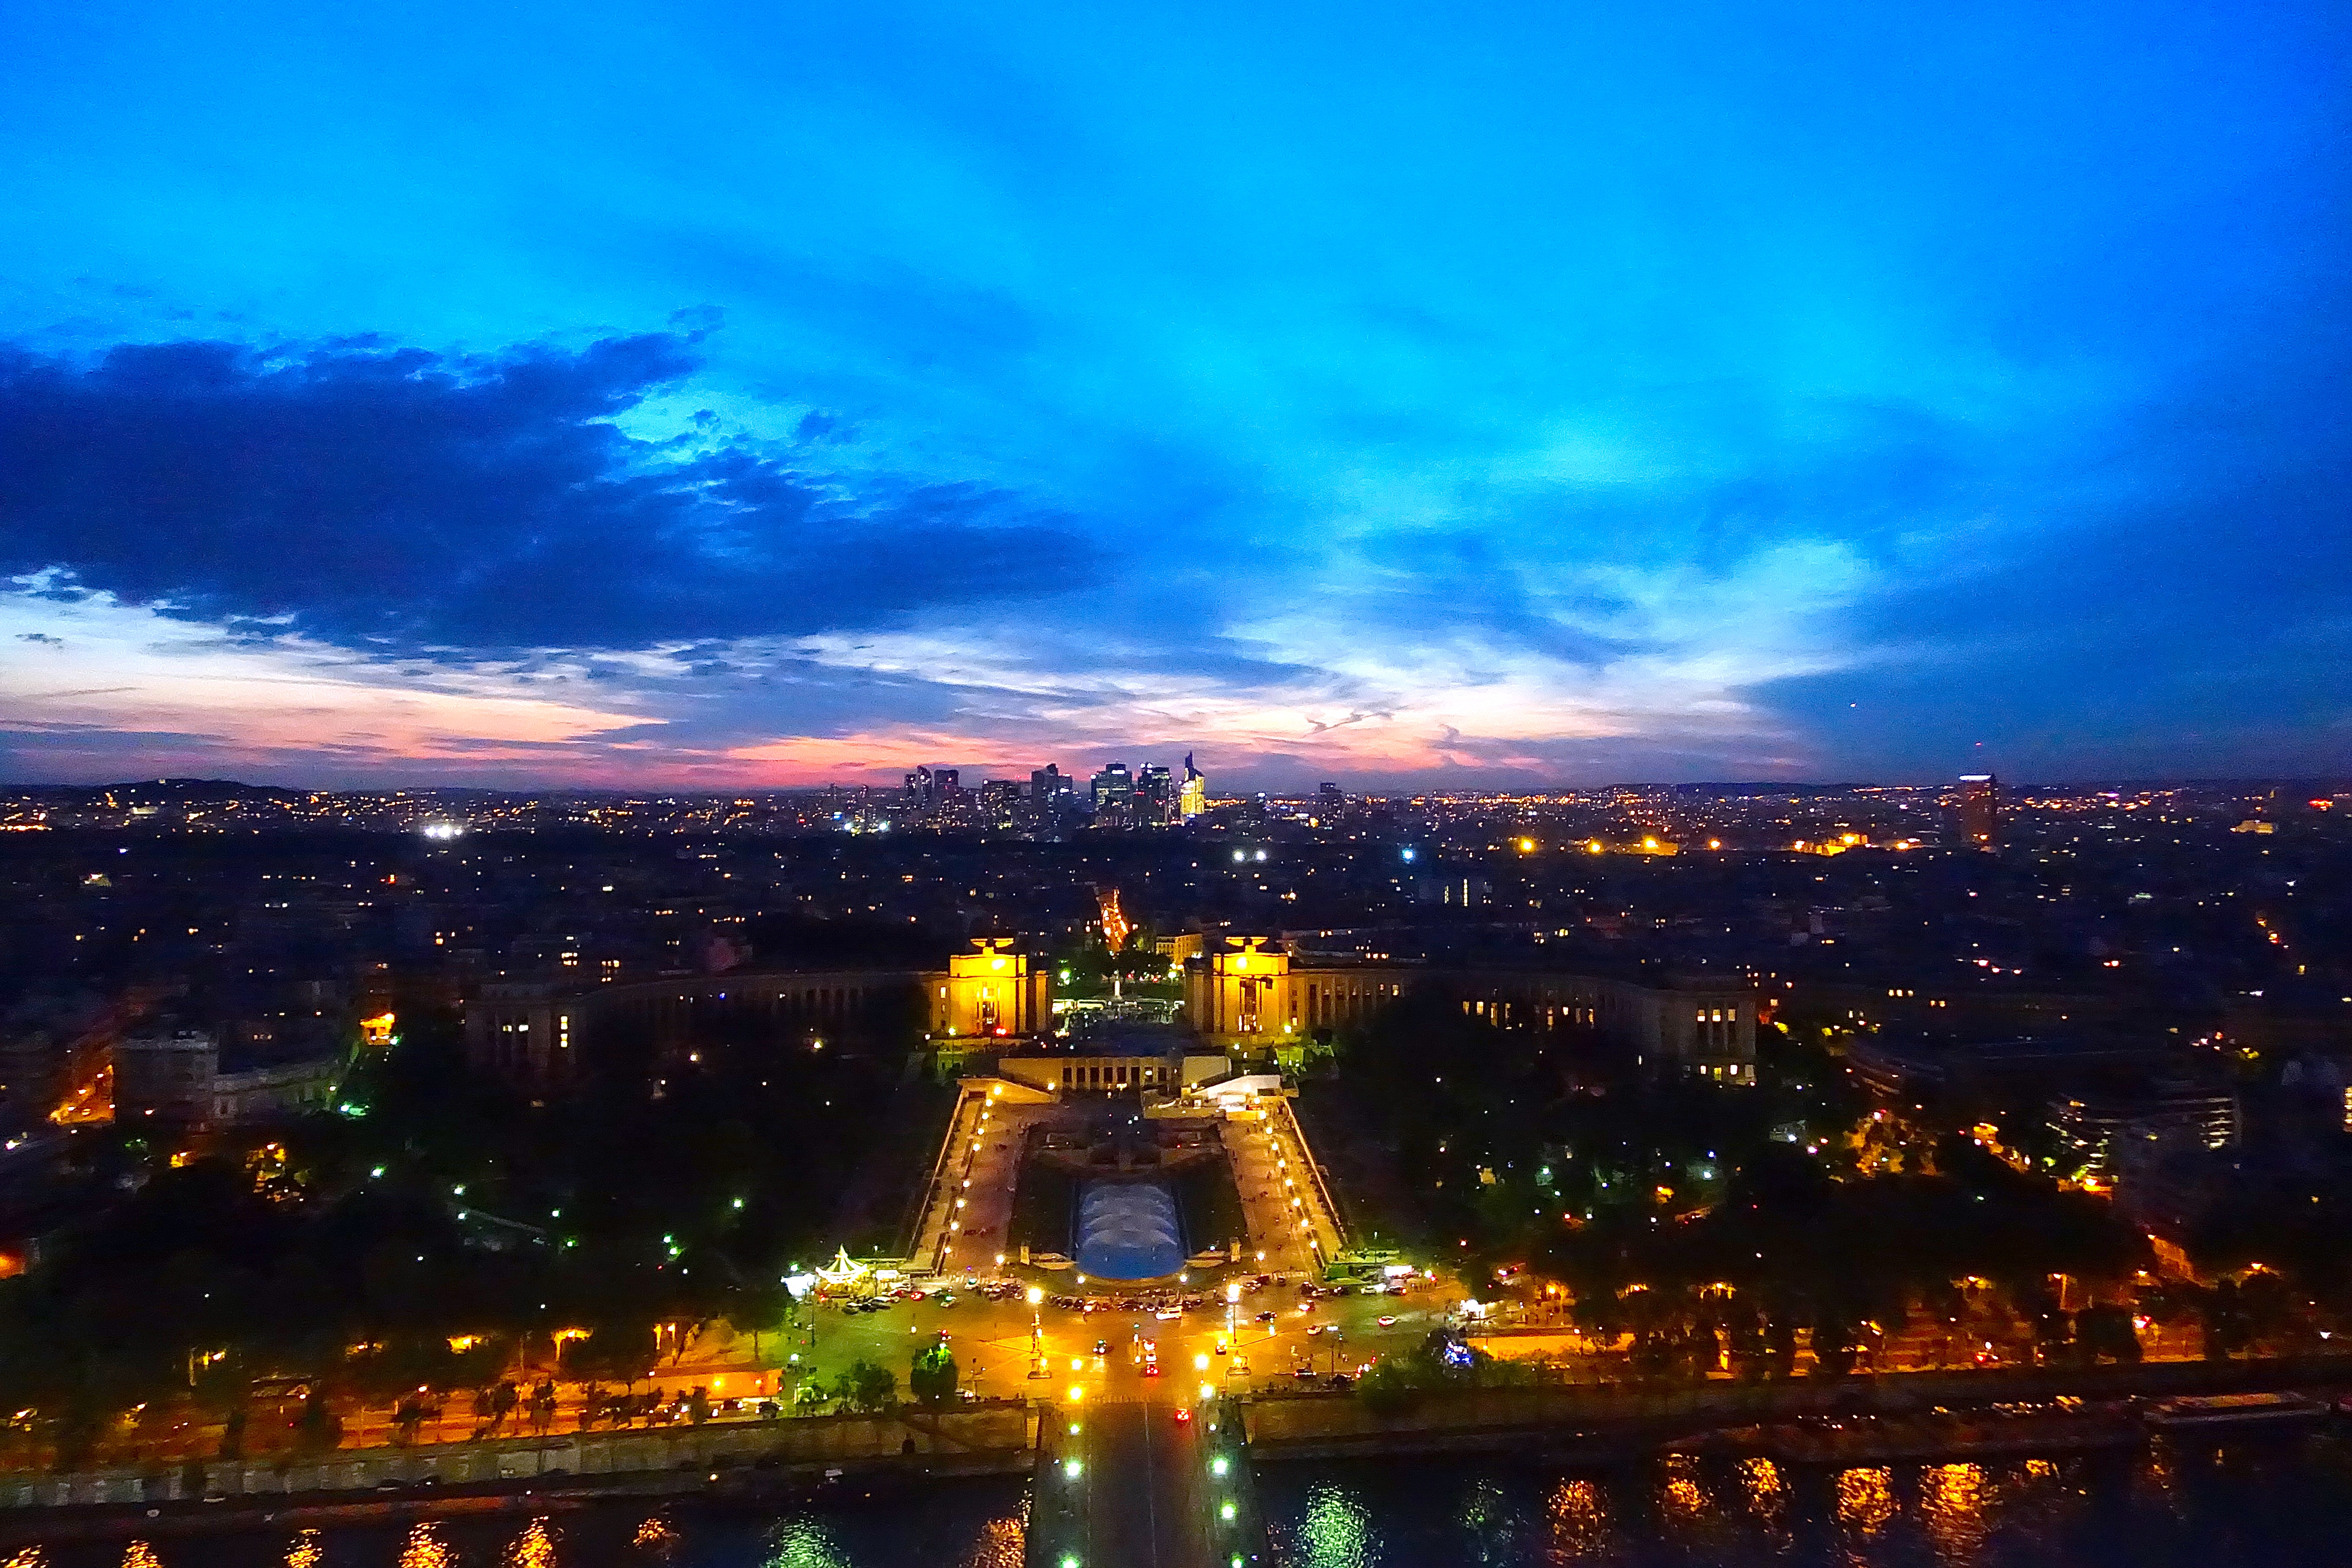 Sunset from Eiffel Tower